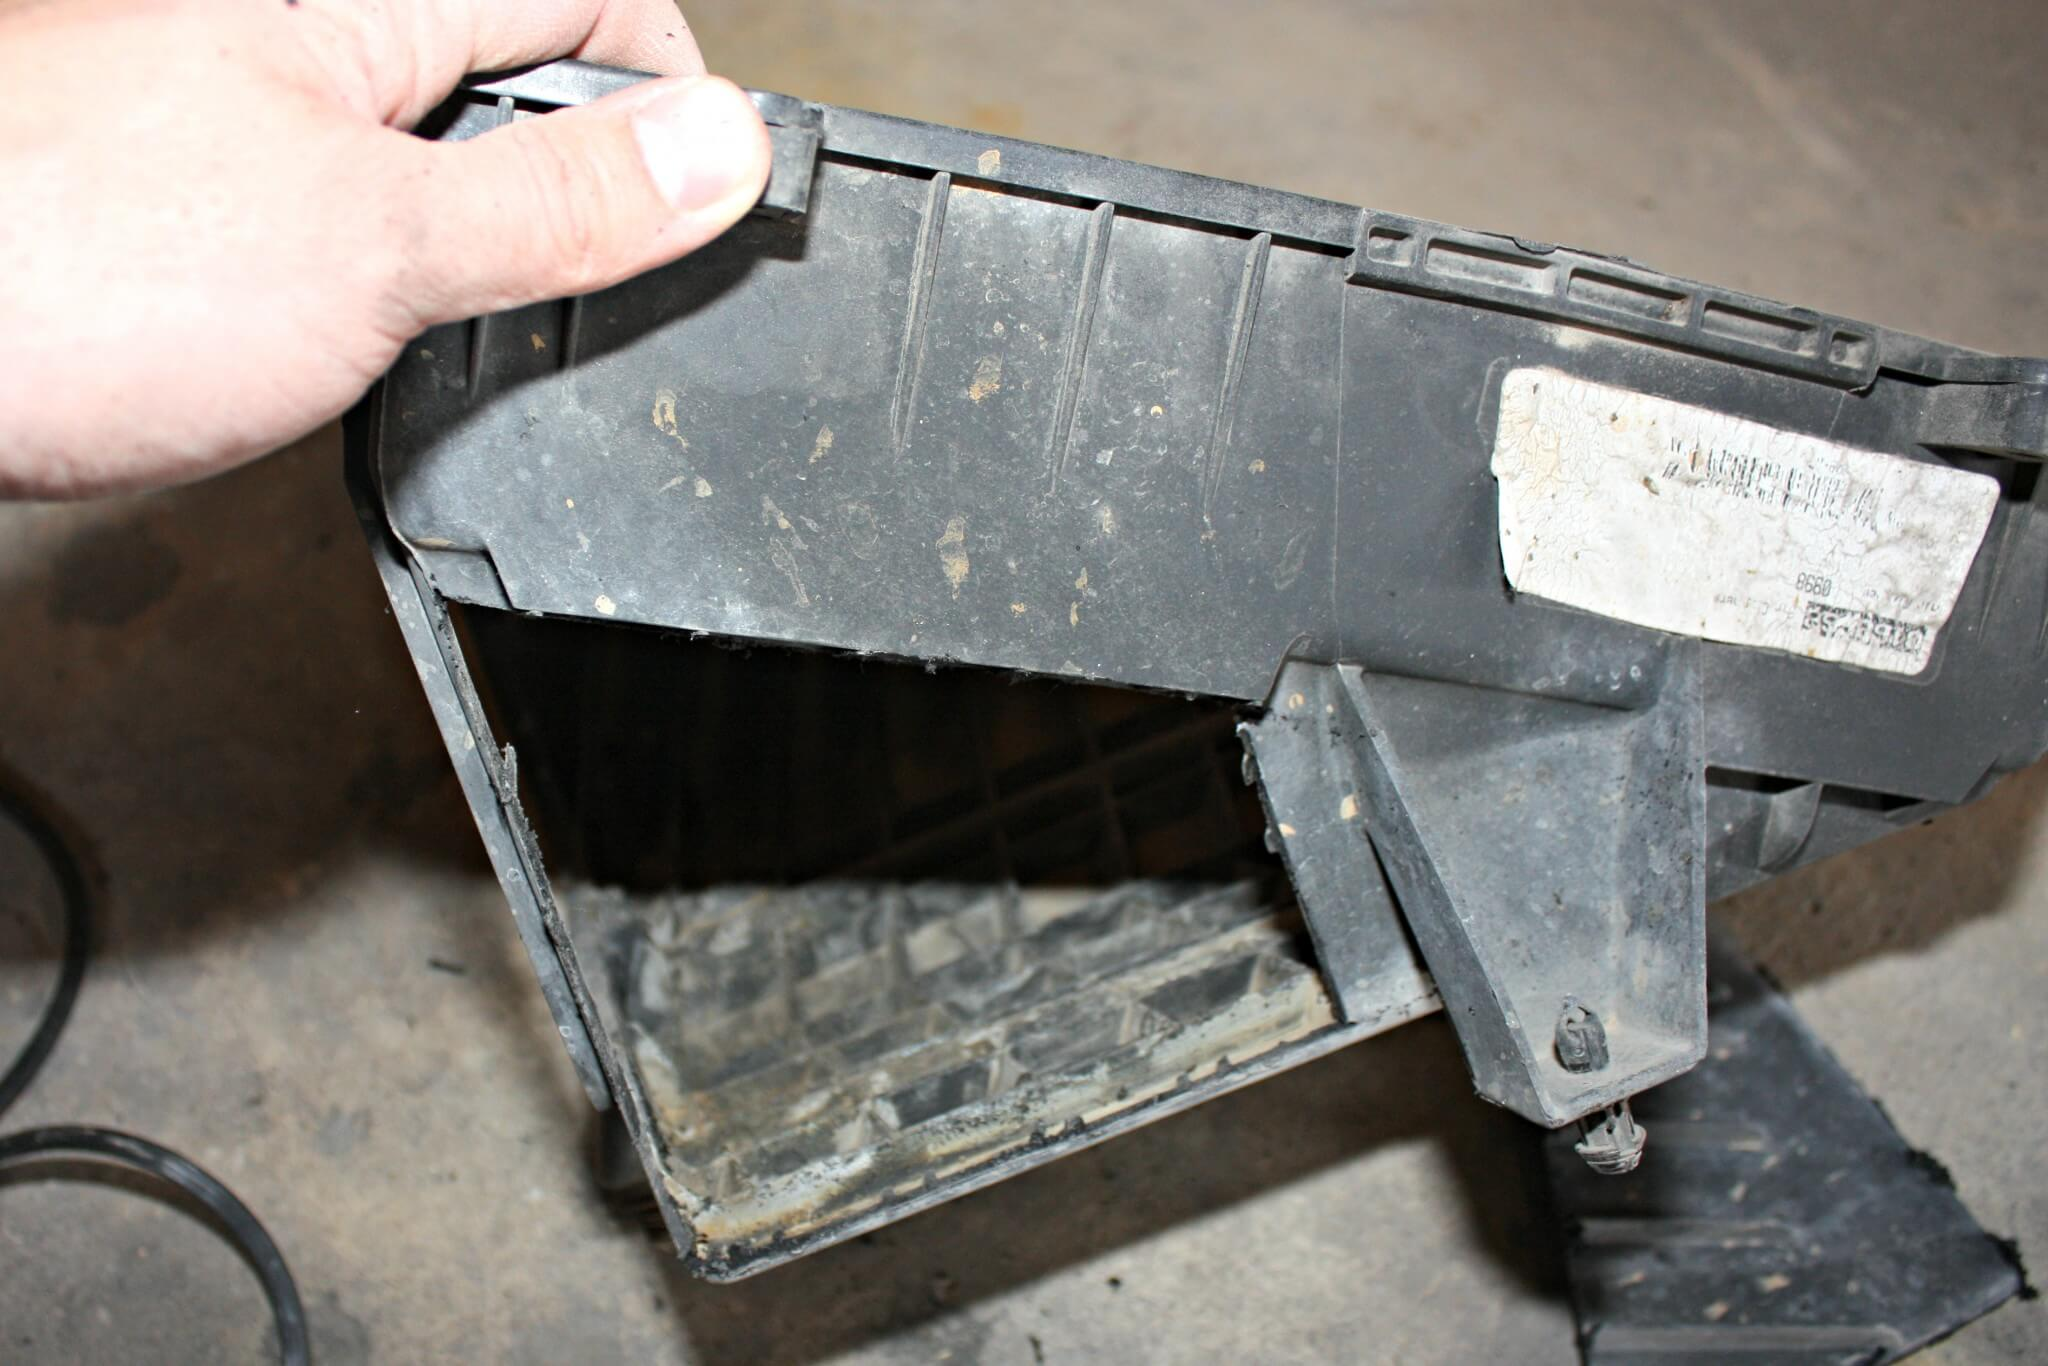 4. With the factory airbox removed from the truck, you'll notice a small opening on the passenger side of the box where it pulls air from the inner fender well area. On the front side of the airbox, you'll also notice a triangular-shaped section on the lower part of the box, seen here. This area can be cut out and removed to allow an additional spot for intake air to enter the box, adding some additional flow for the filter. Using a cutoff wheel, the plastic will cut easily. A small file can then be used to debur the edges before the box is reinstalled in the truck. While this may not seem like much, the added airflow can make an improvement over stock without costing you anything out of pocket.